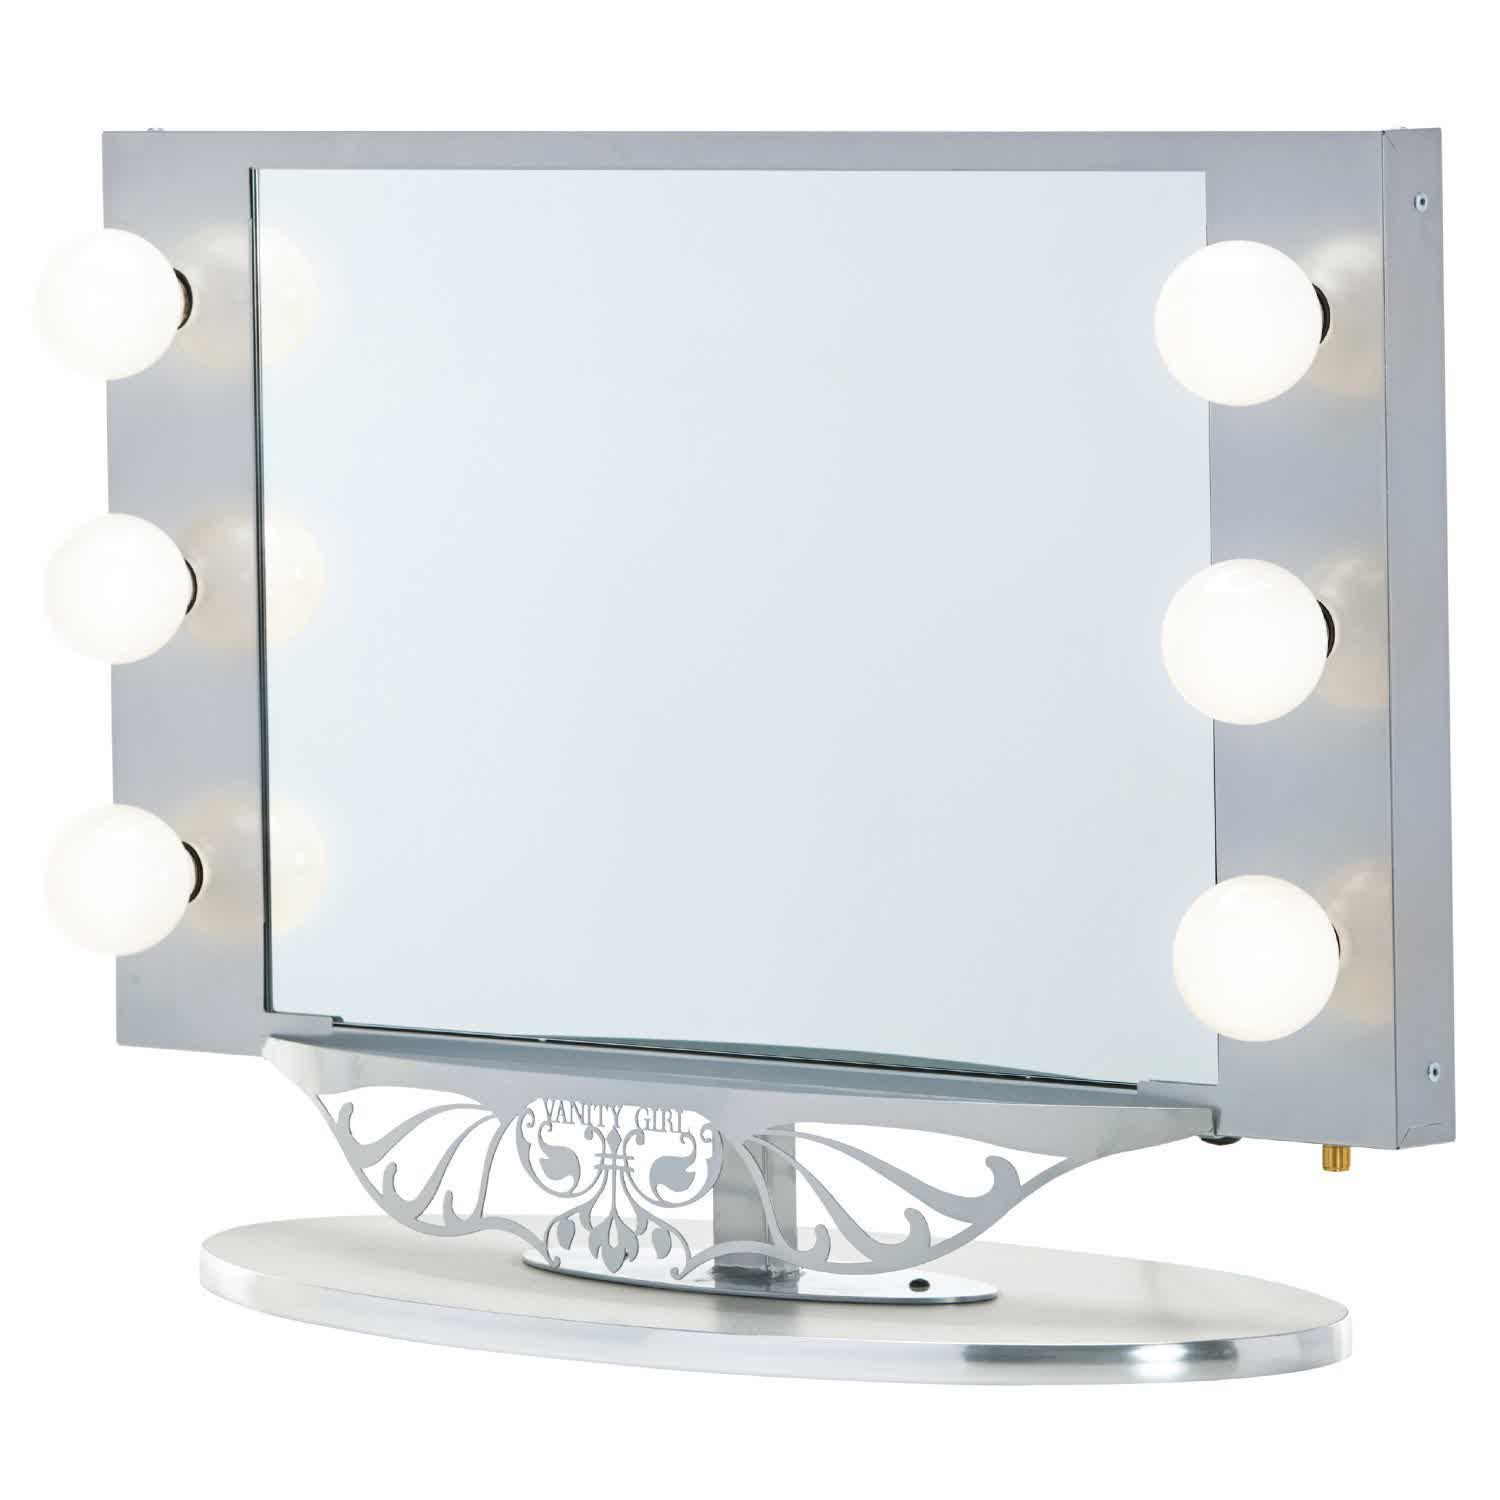 "Vanity Girl Hollywood Starlet Lighted Vanity Mirror - Silver, 34"" x 23"""